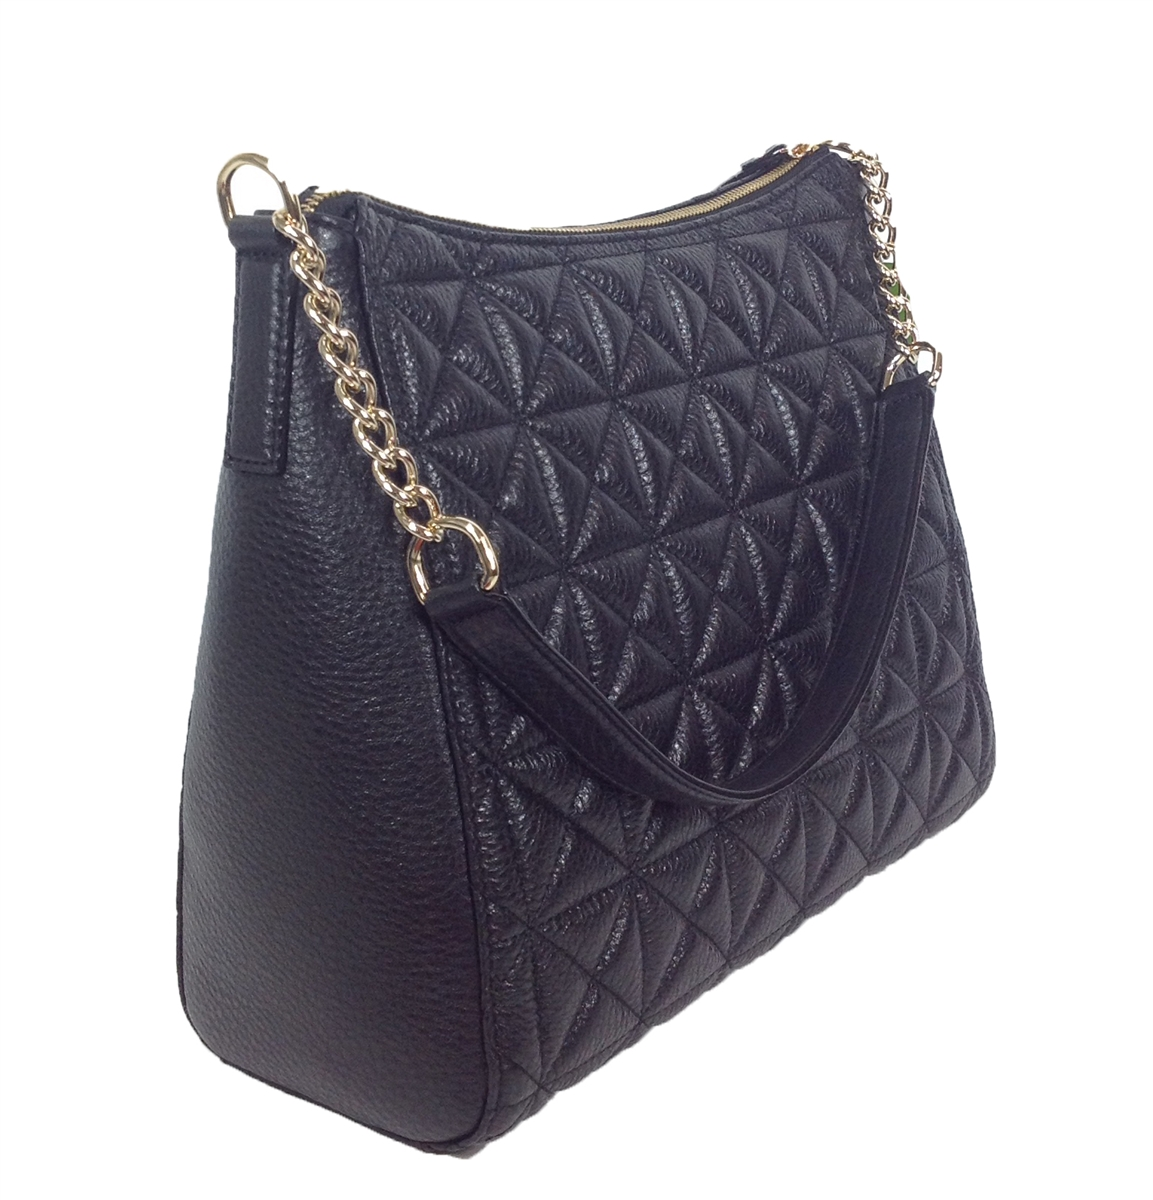 Kate Spade Whitaker Place Aurelia Quilted Leather Hobo Bag Black